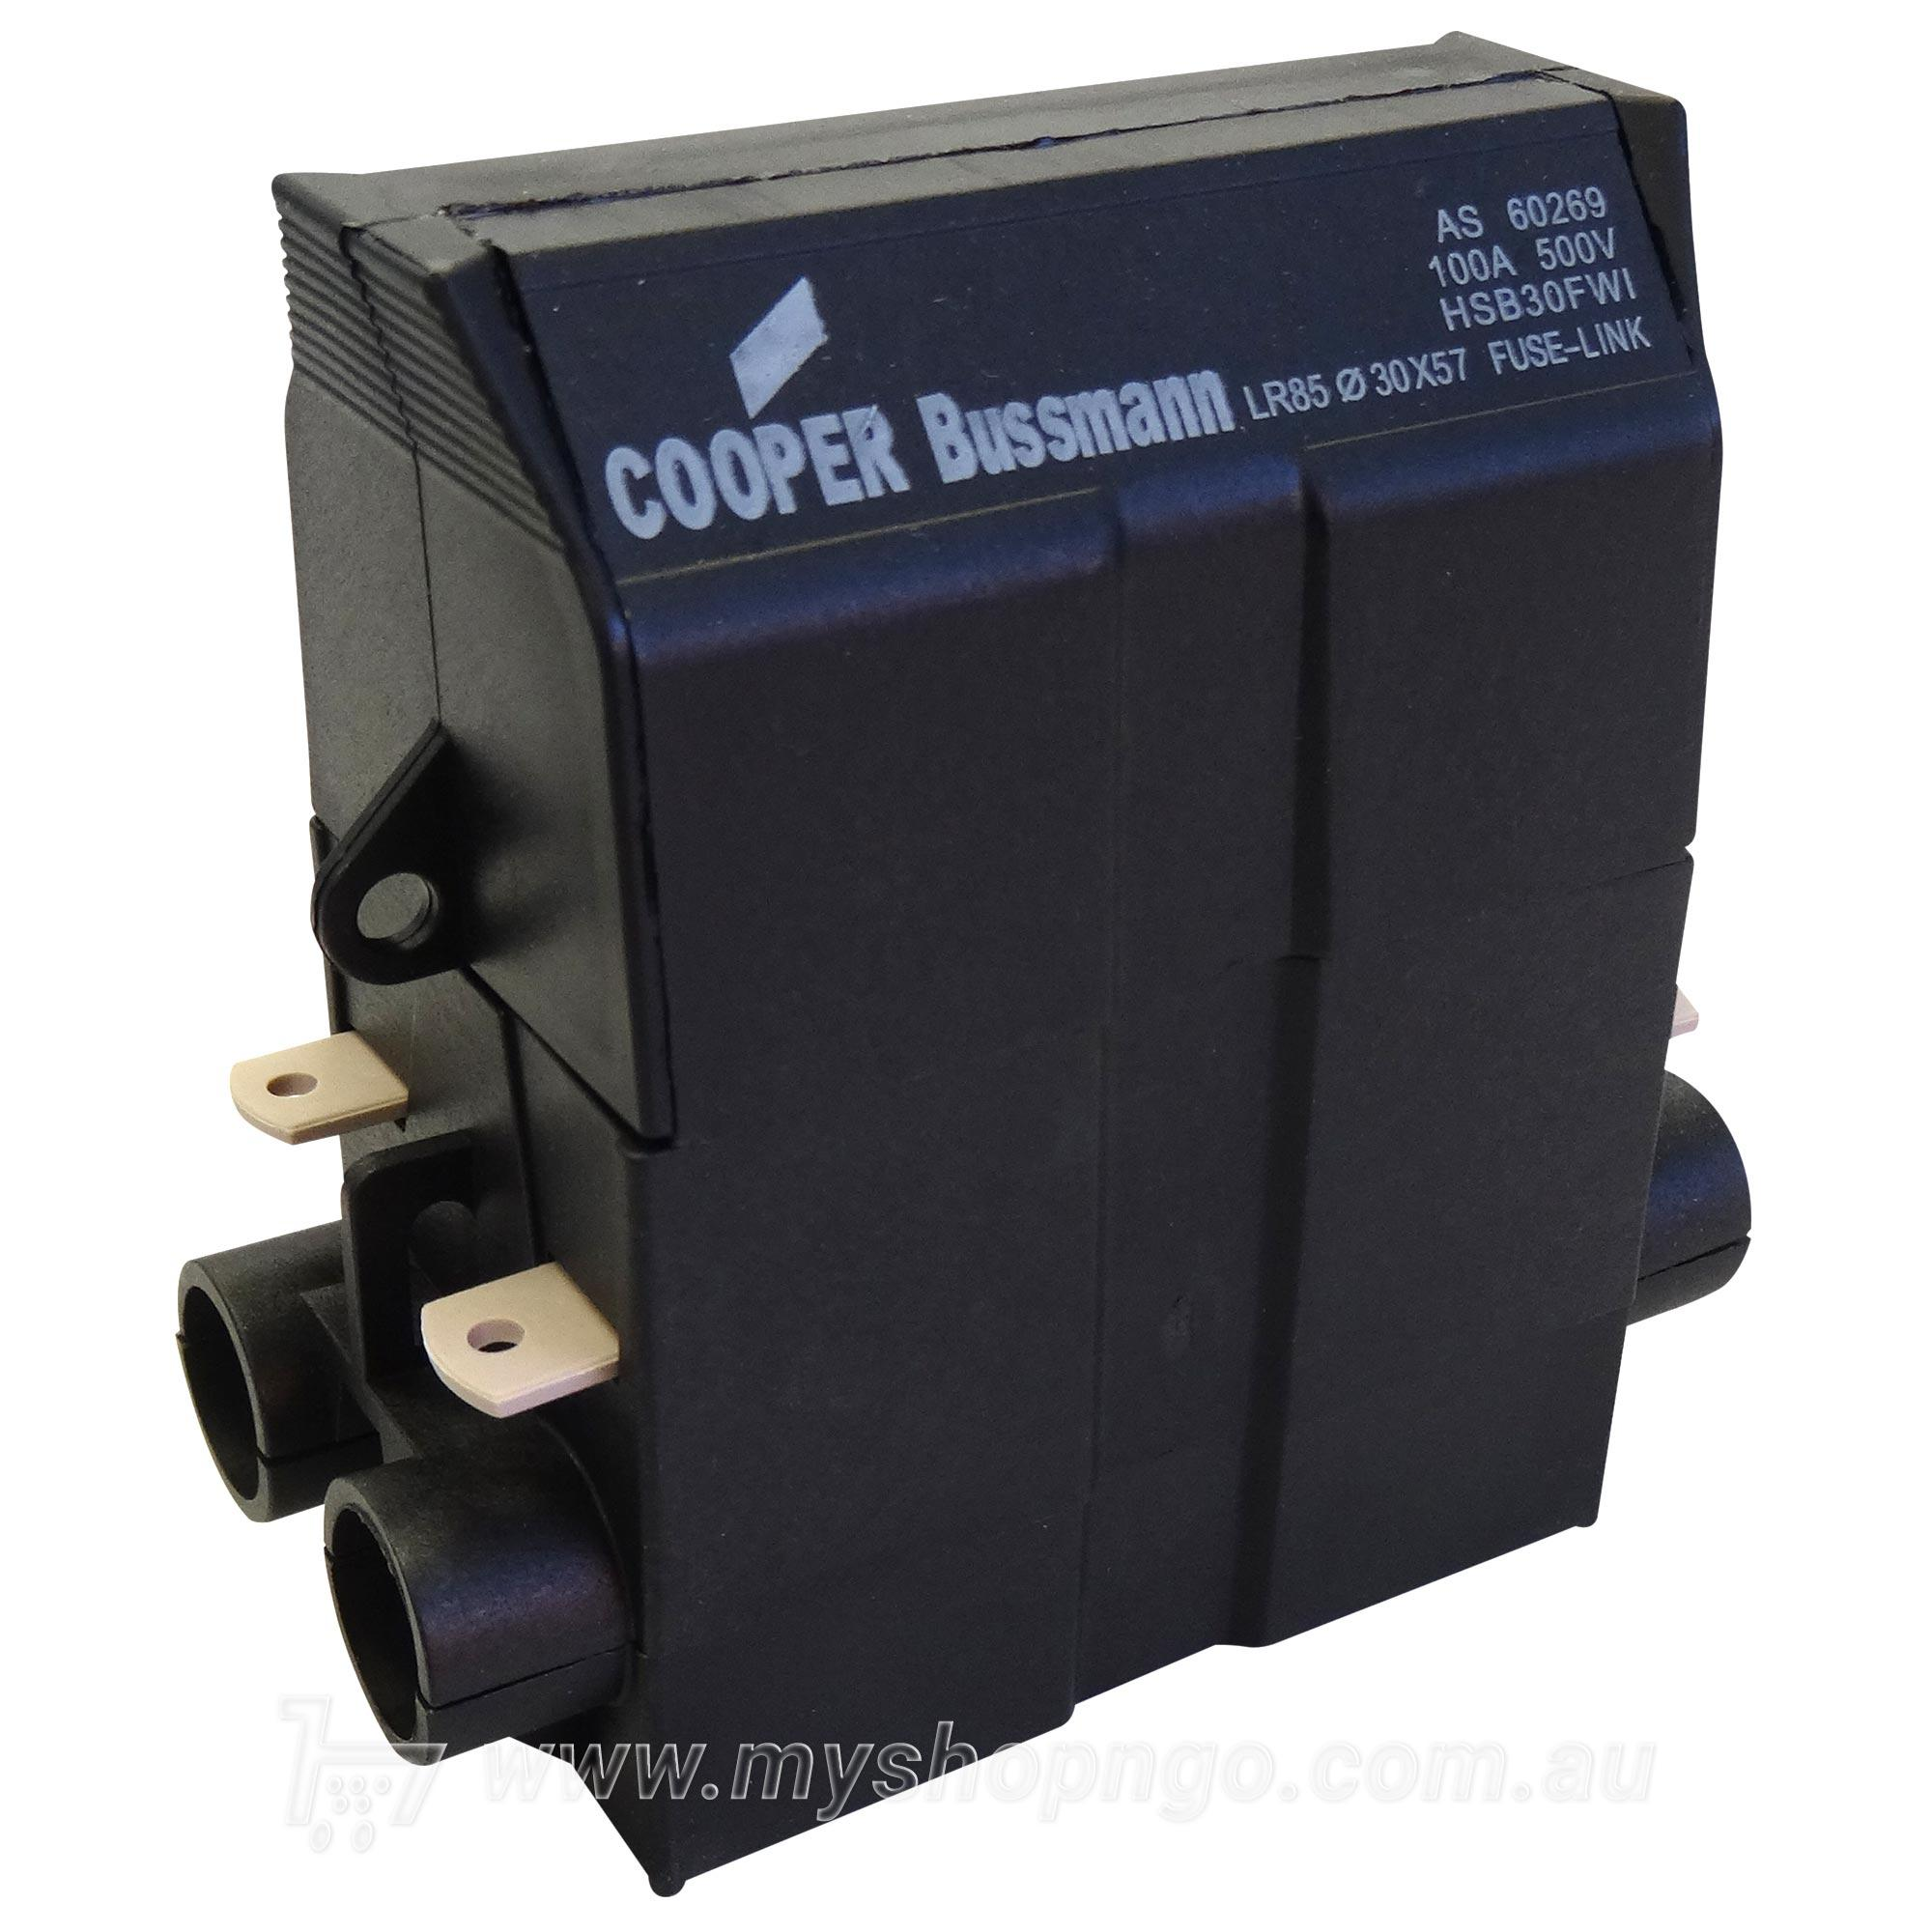 Cooper Bussmann Hsb30fwi House Service Fuse Holder 100 Amp Printed Circuit Board Holders Fuseholderservice 100a Blk Front 30x57i 100amp